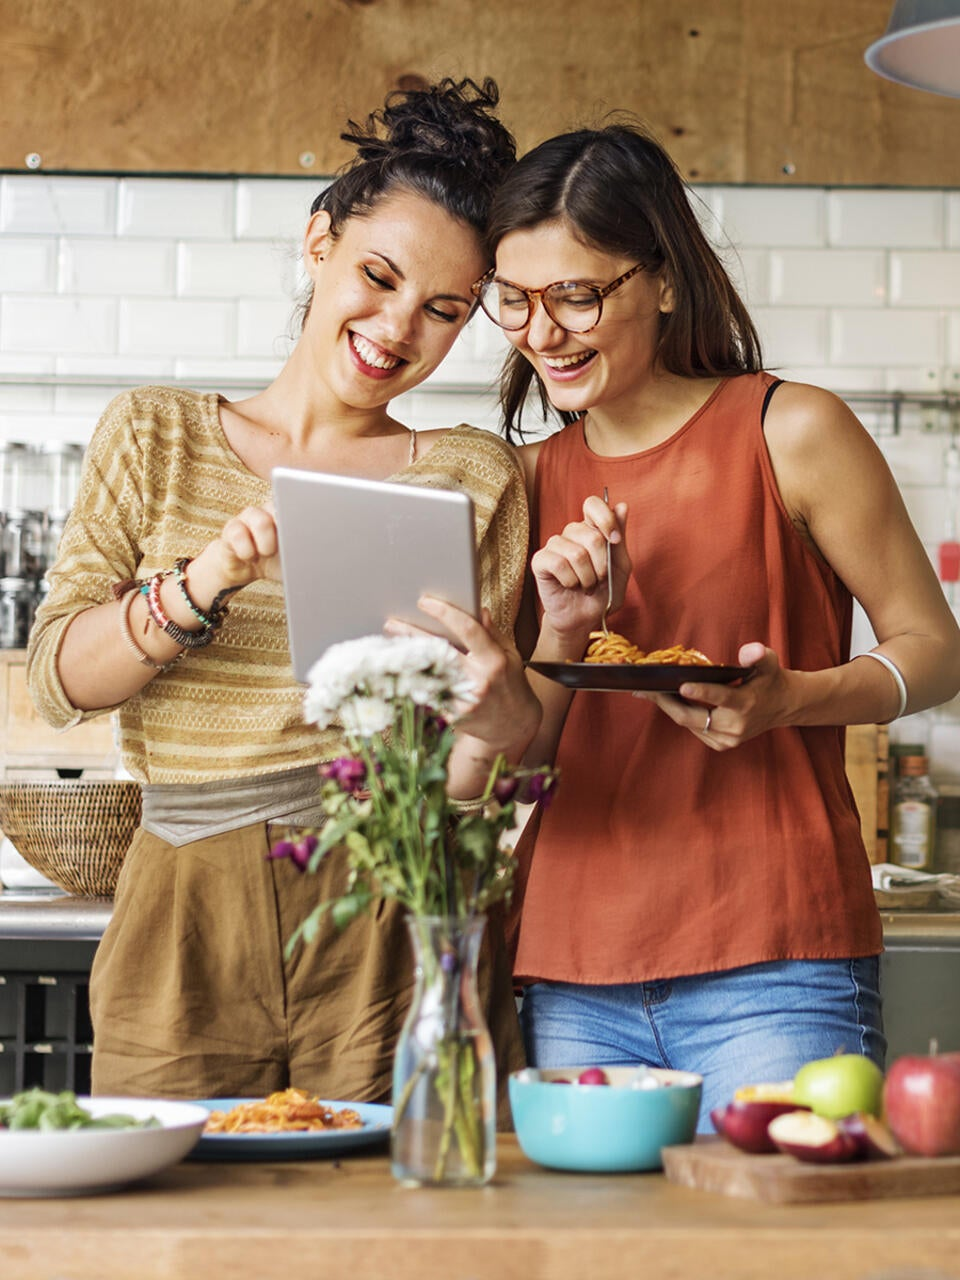 Two smiling young women use a tablet in a modern kitchen.